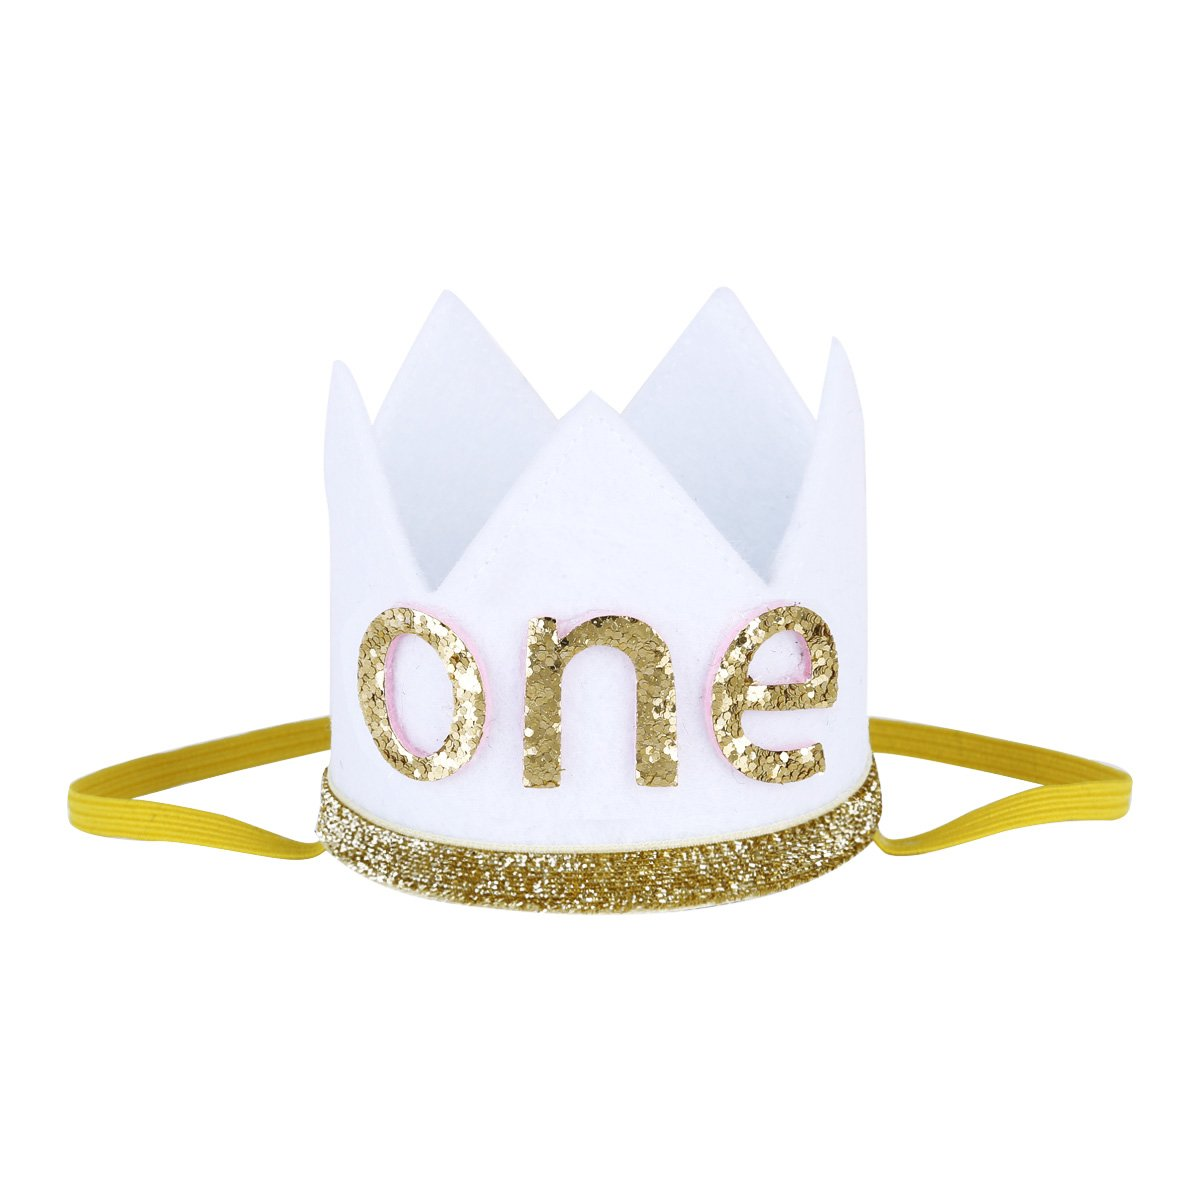 FEESHOW Baby Girls Boy First 1st Birthday Hat Prince Party Sparkle Crown Elastic Headband Cake Smash Photo Prop White Letter ONE One Size